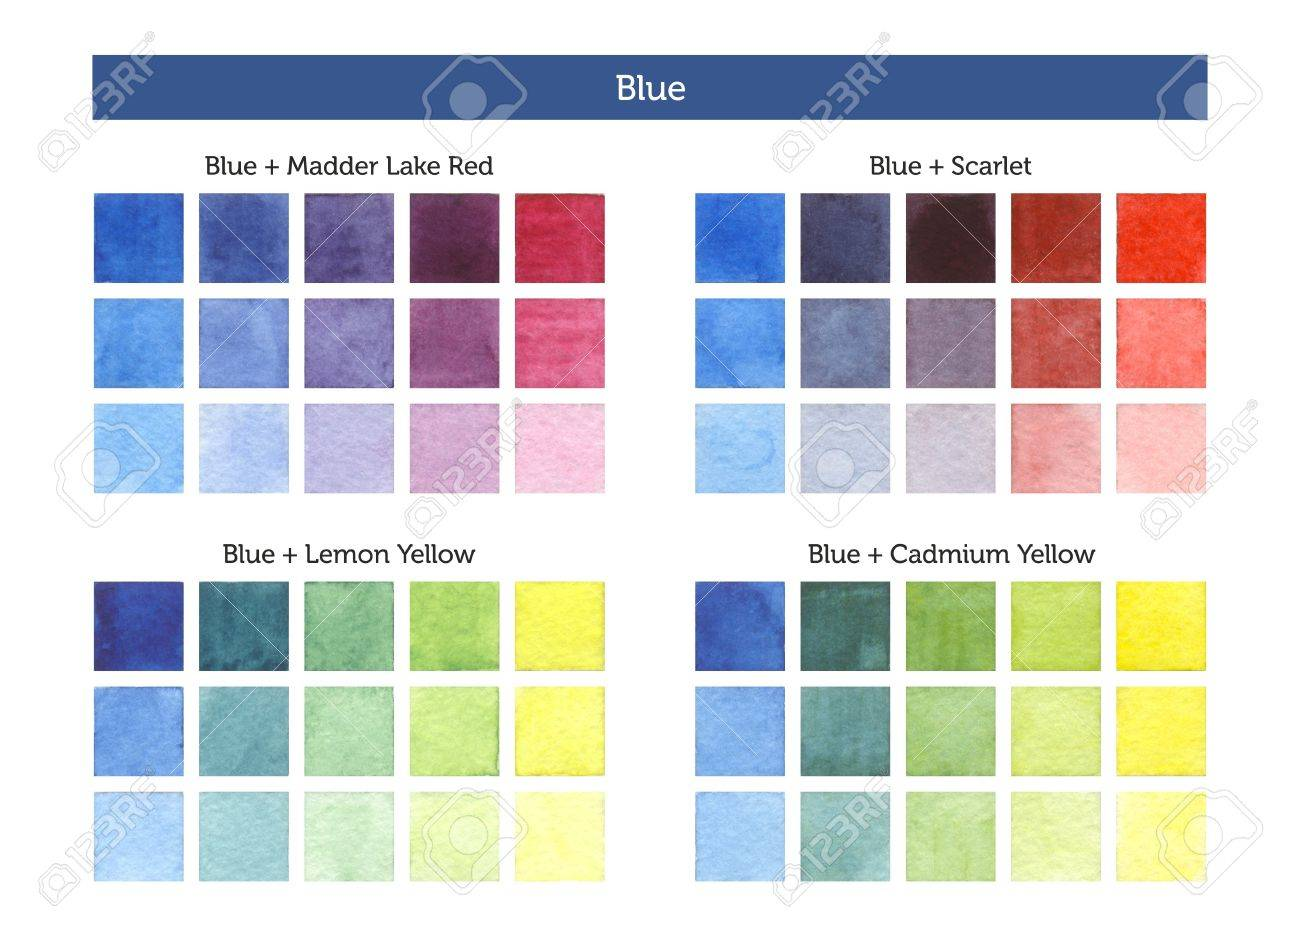 Color Chart Of Blue Mixing With Others Primary Colors Stock Photo